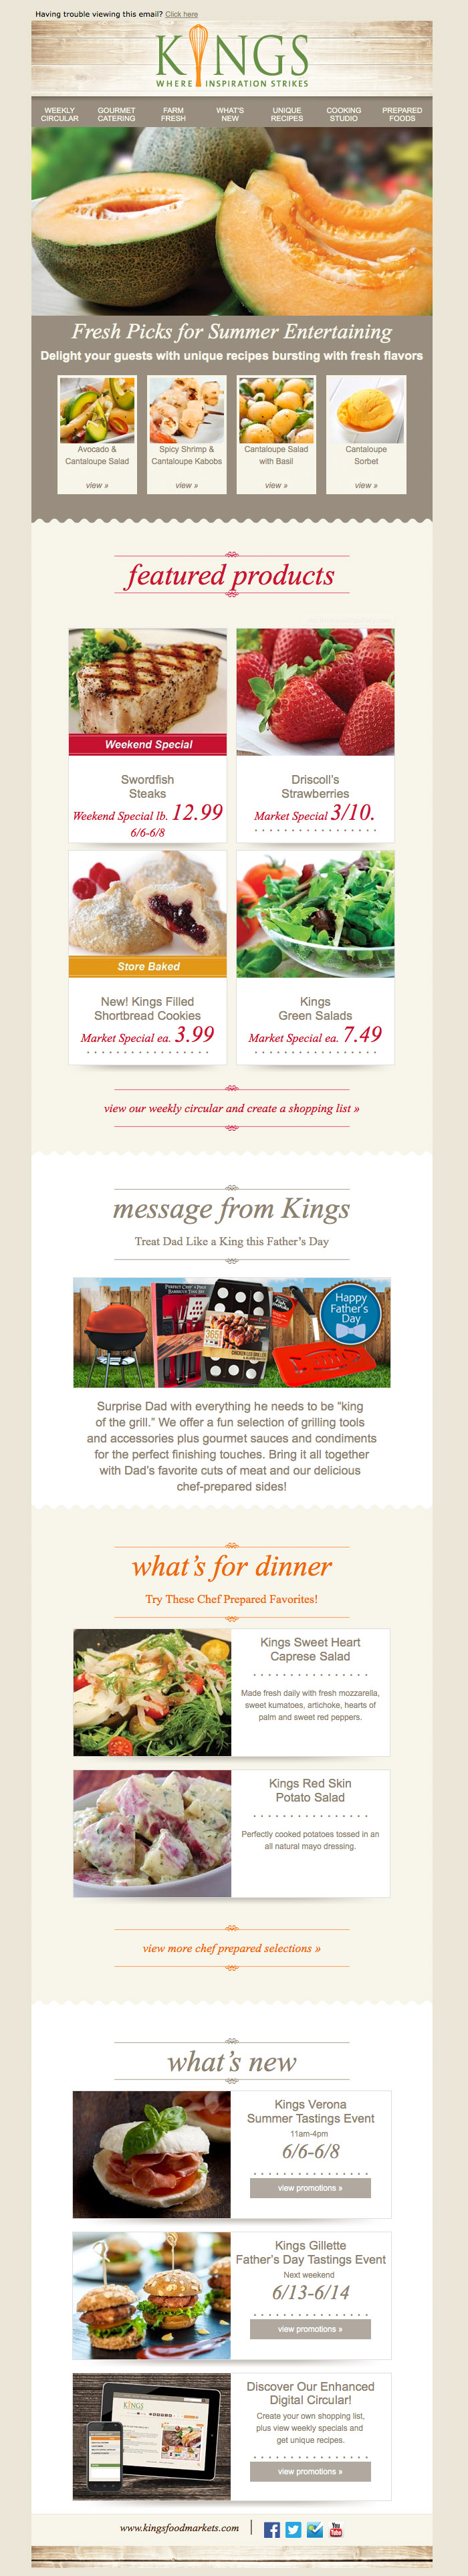 Kings Fresh Summer Produce email